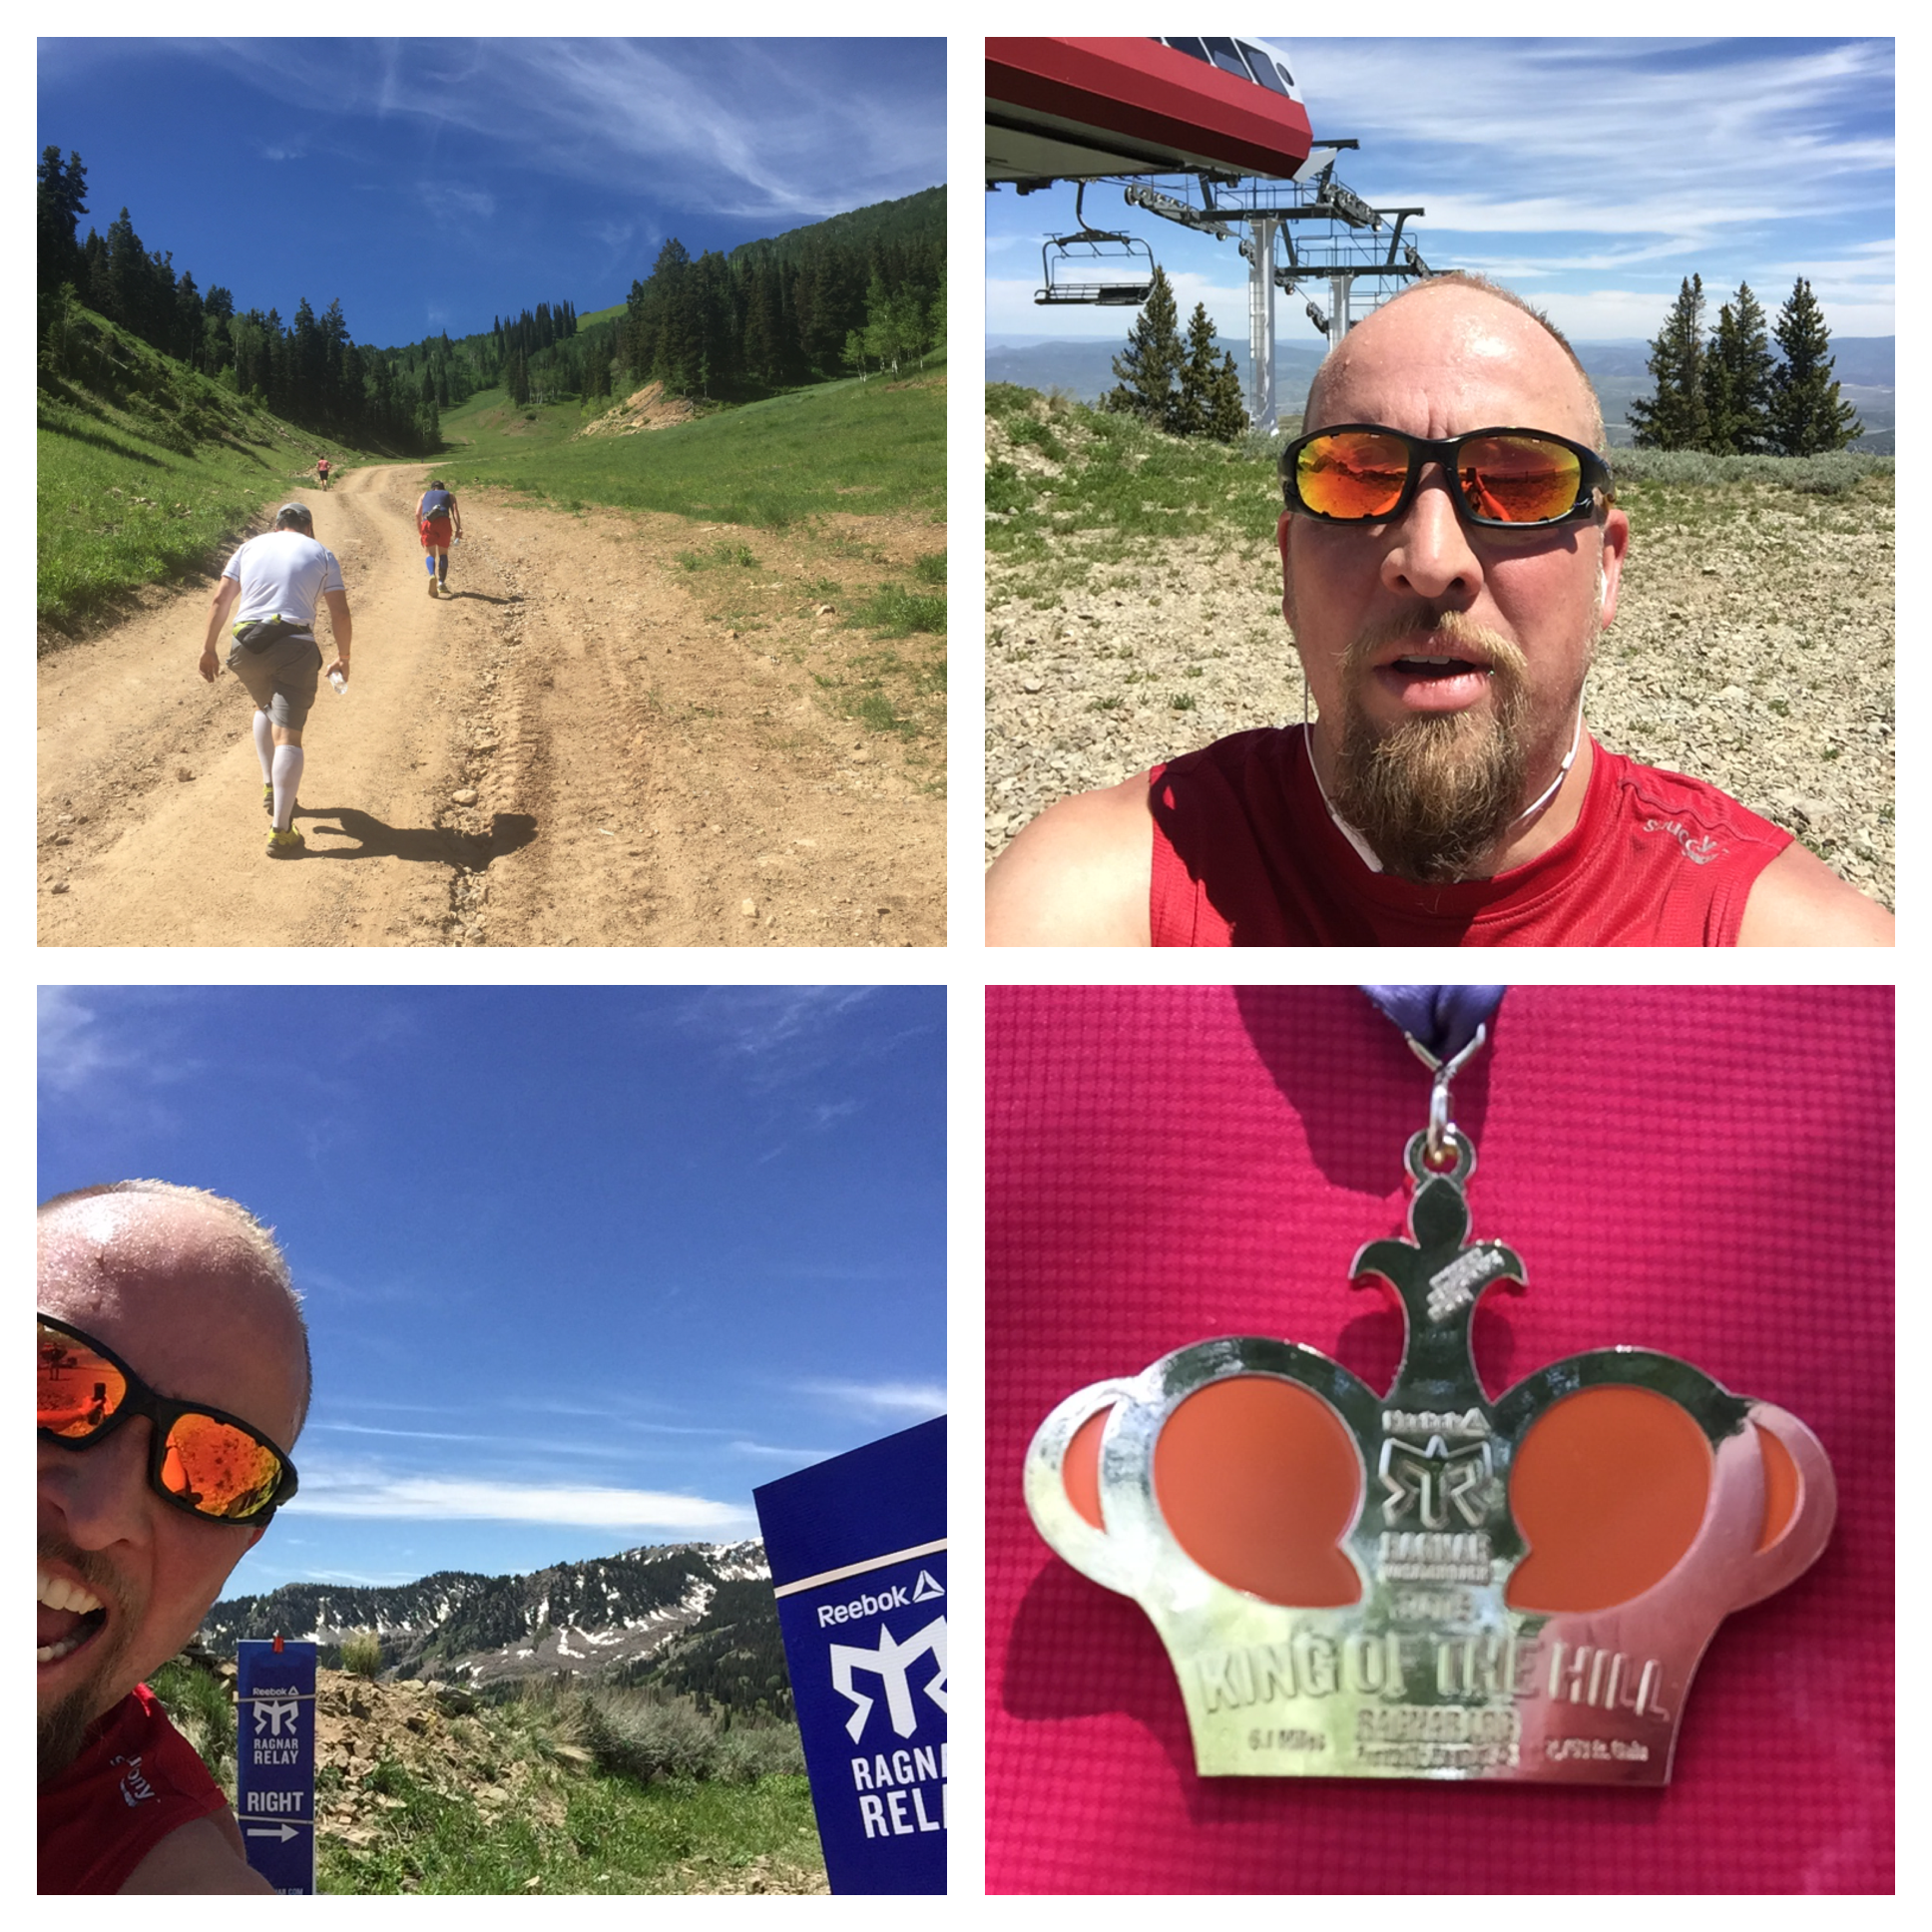 Ragnar Hill, was BRUTAL!